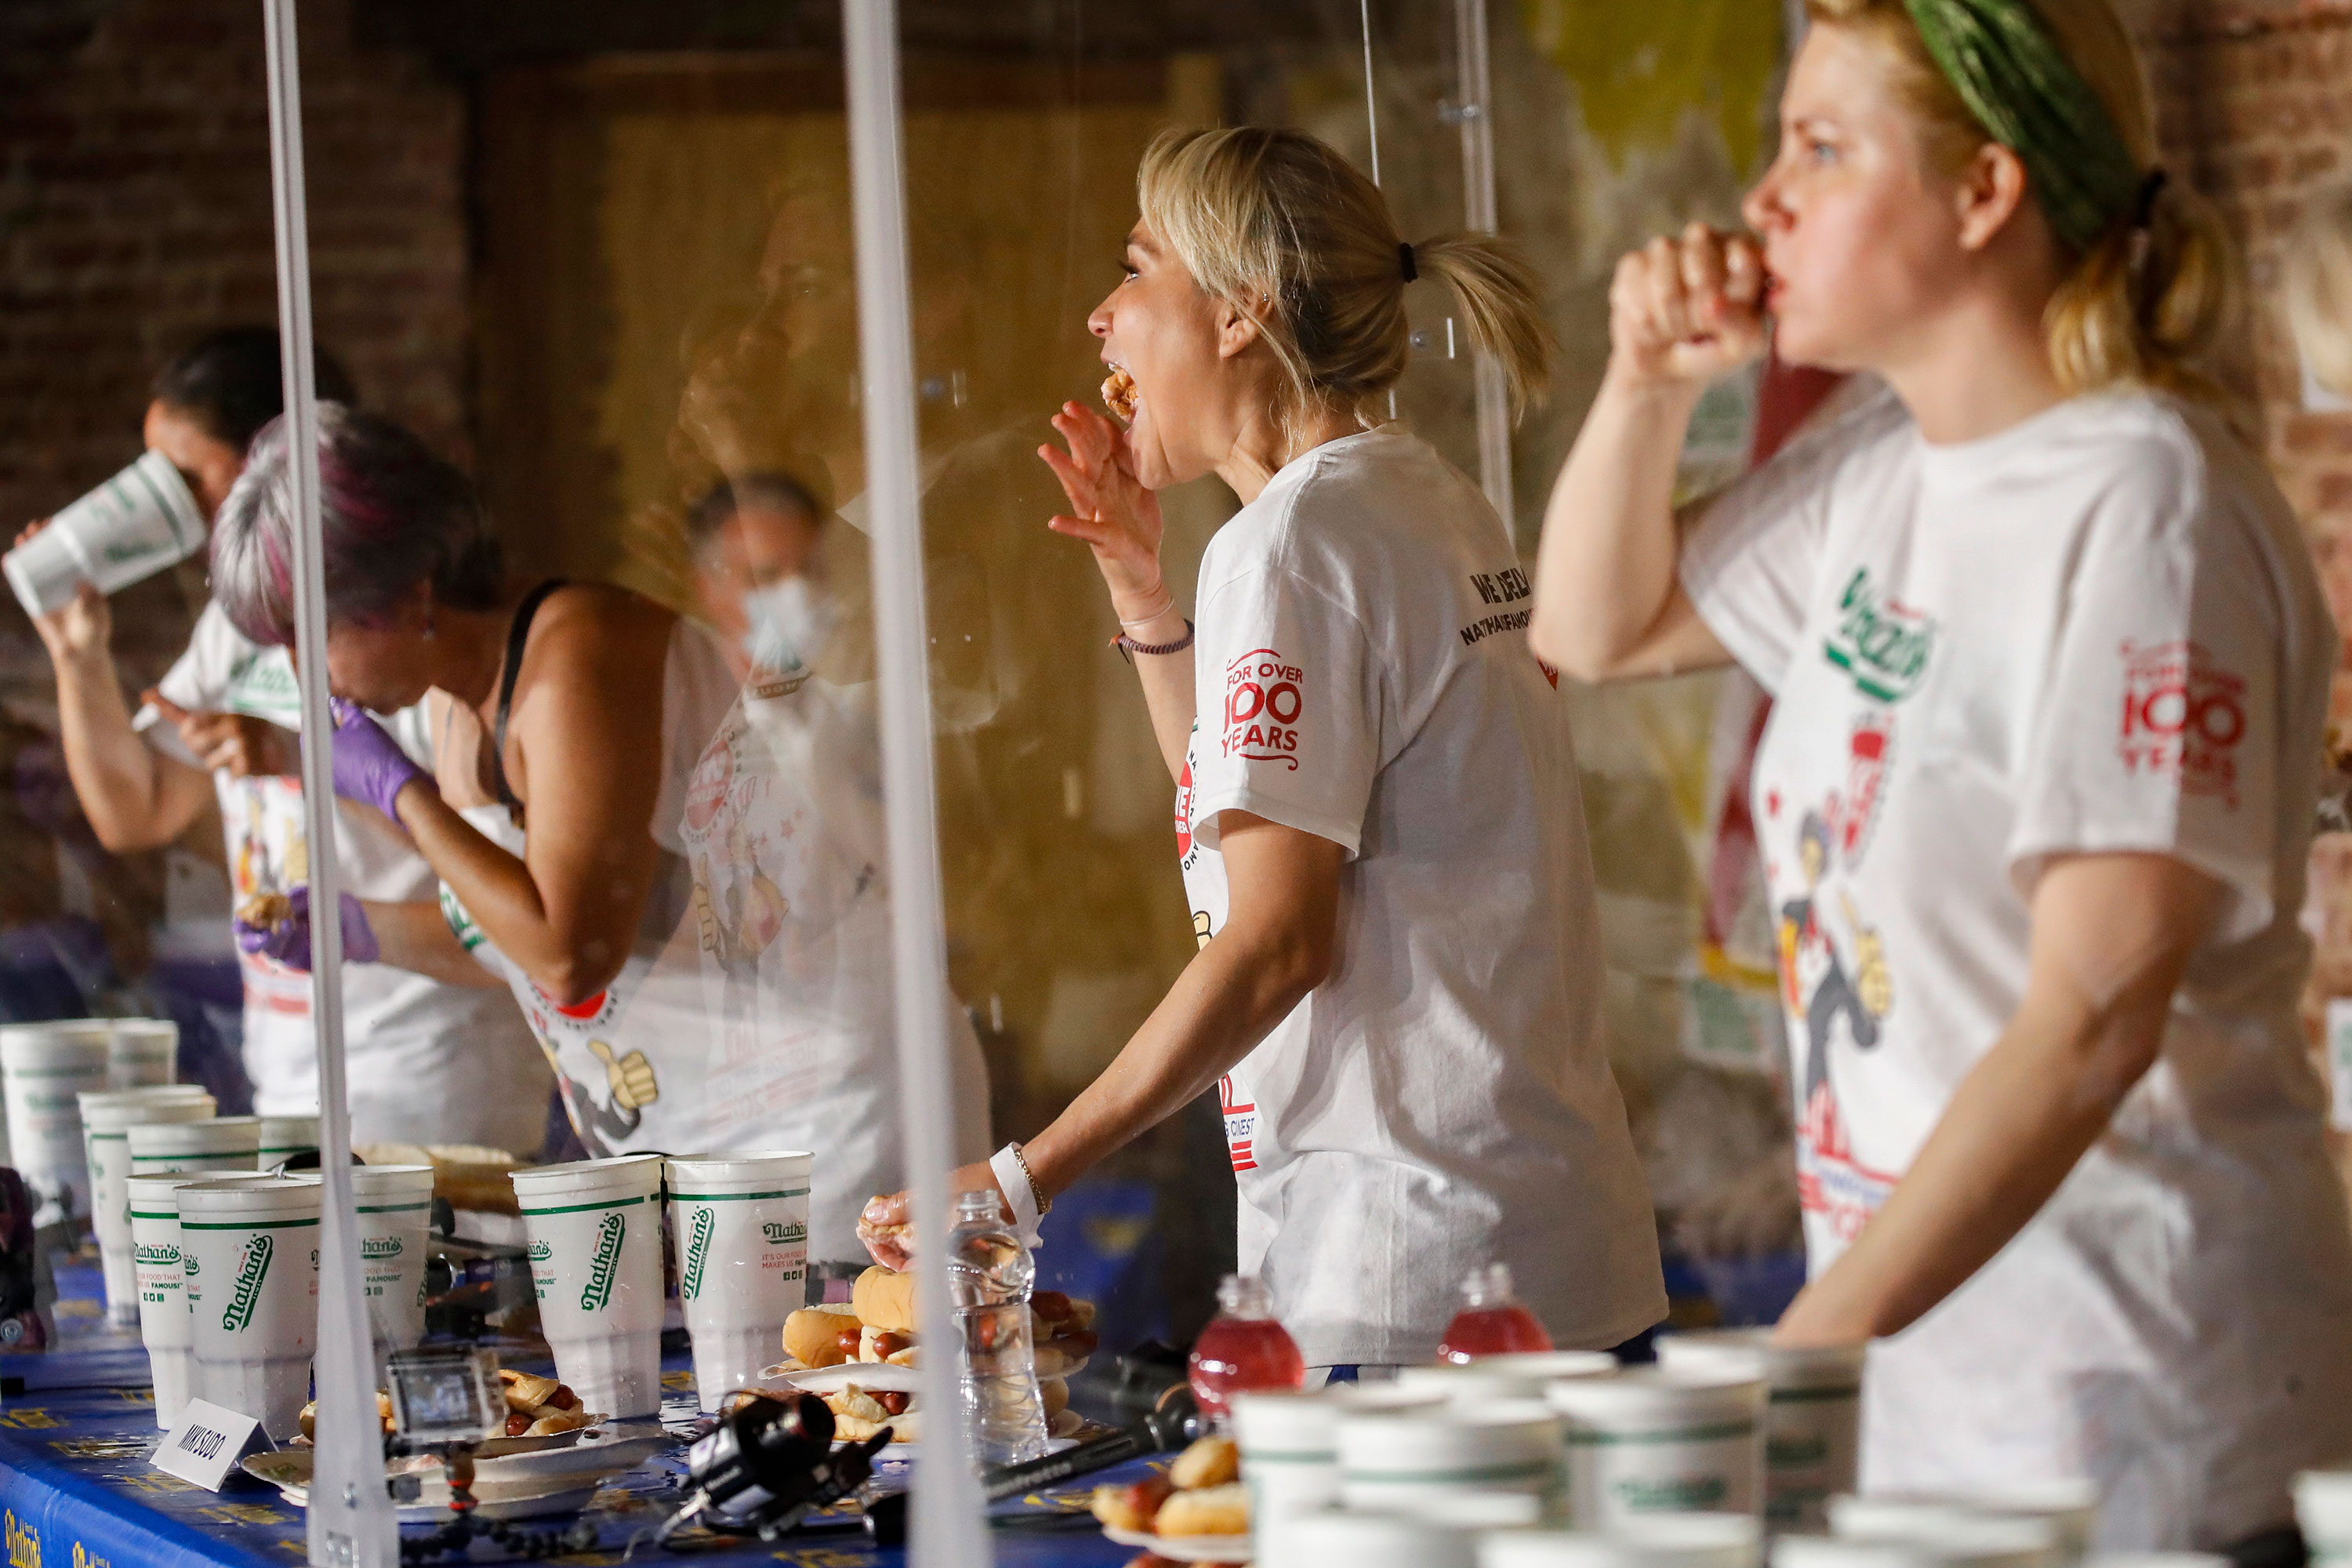 Competitive eater Miki Sudo, center, competes in the women's division of the Nathan's Famous July Fourth hot dog eating contest on July 4 in New York.